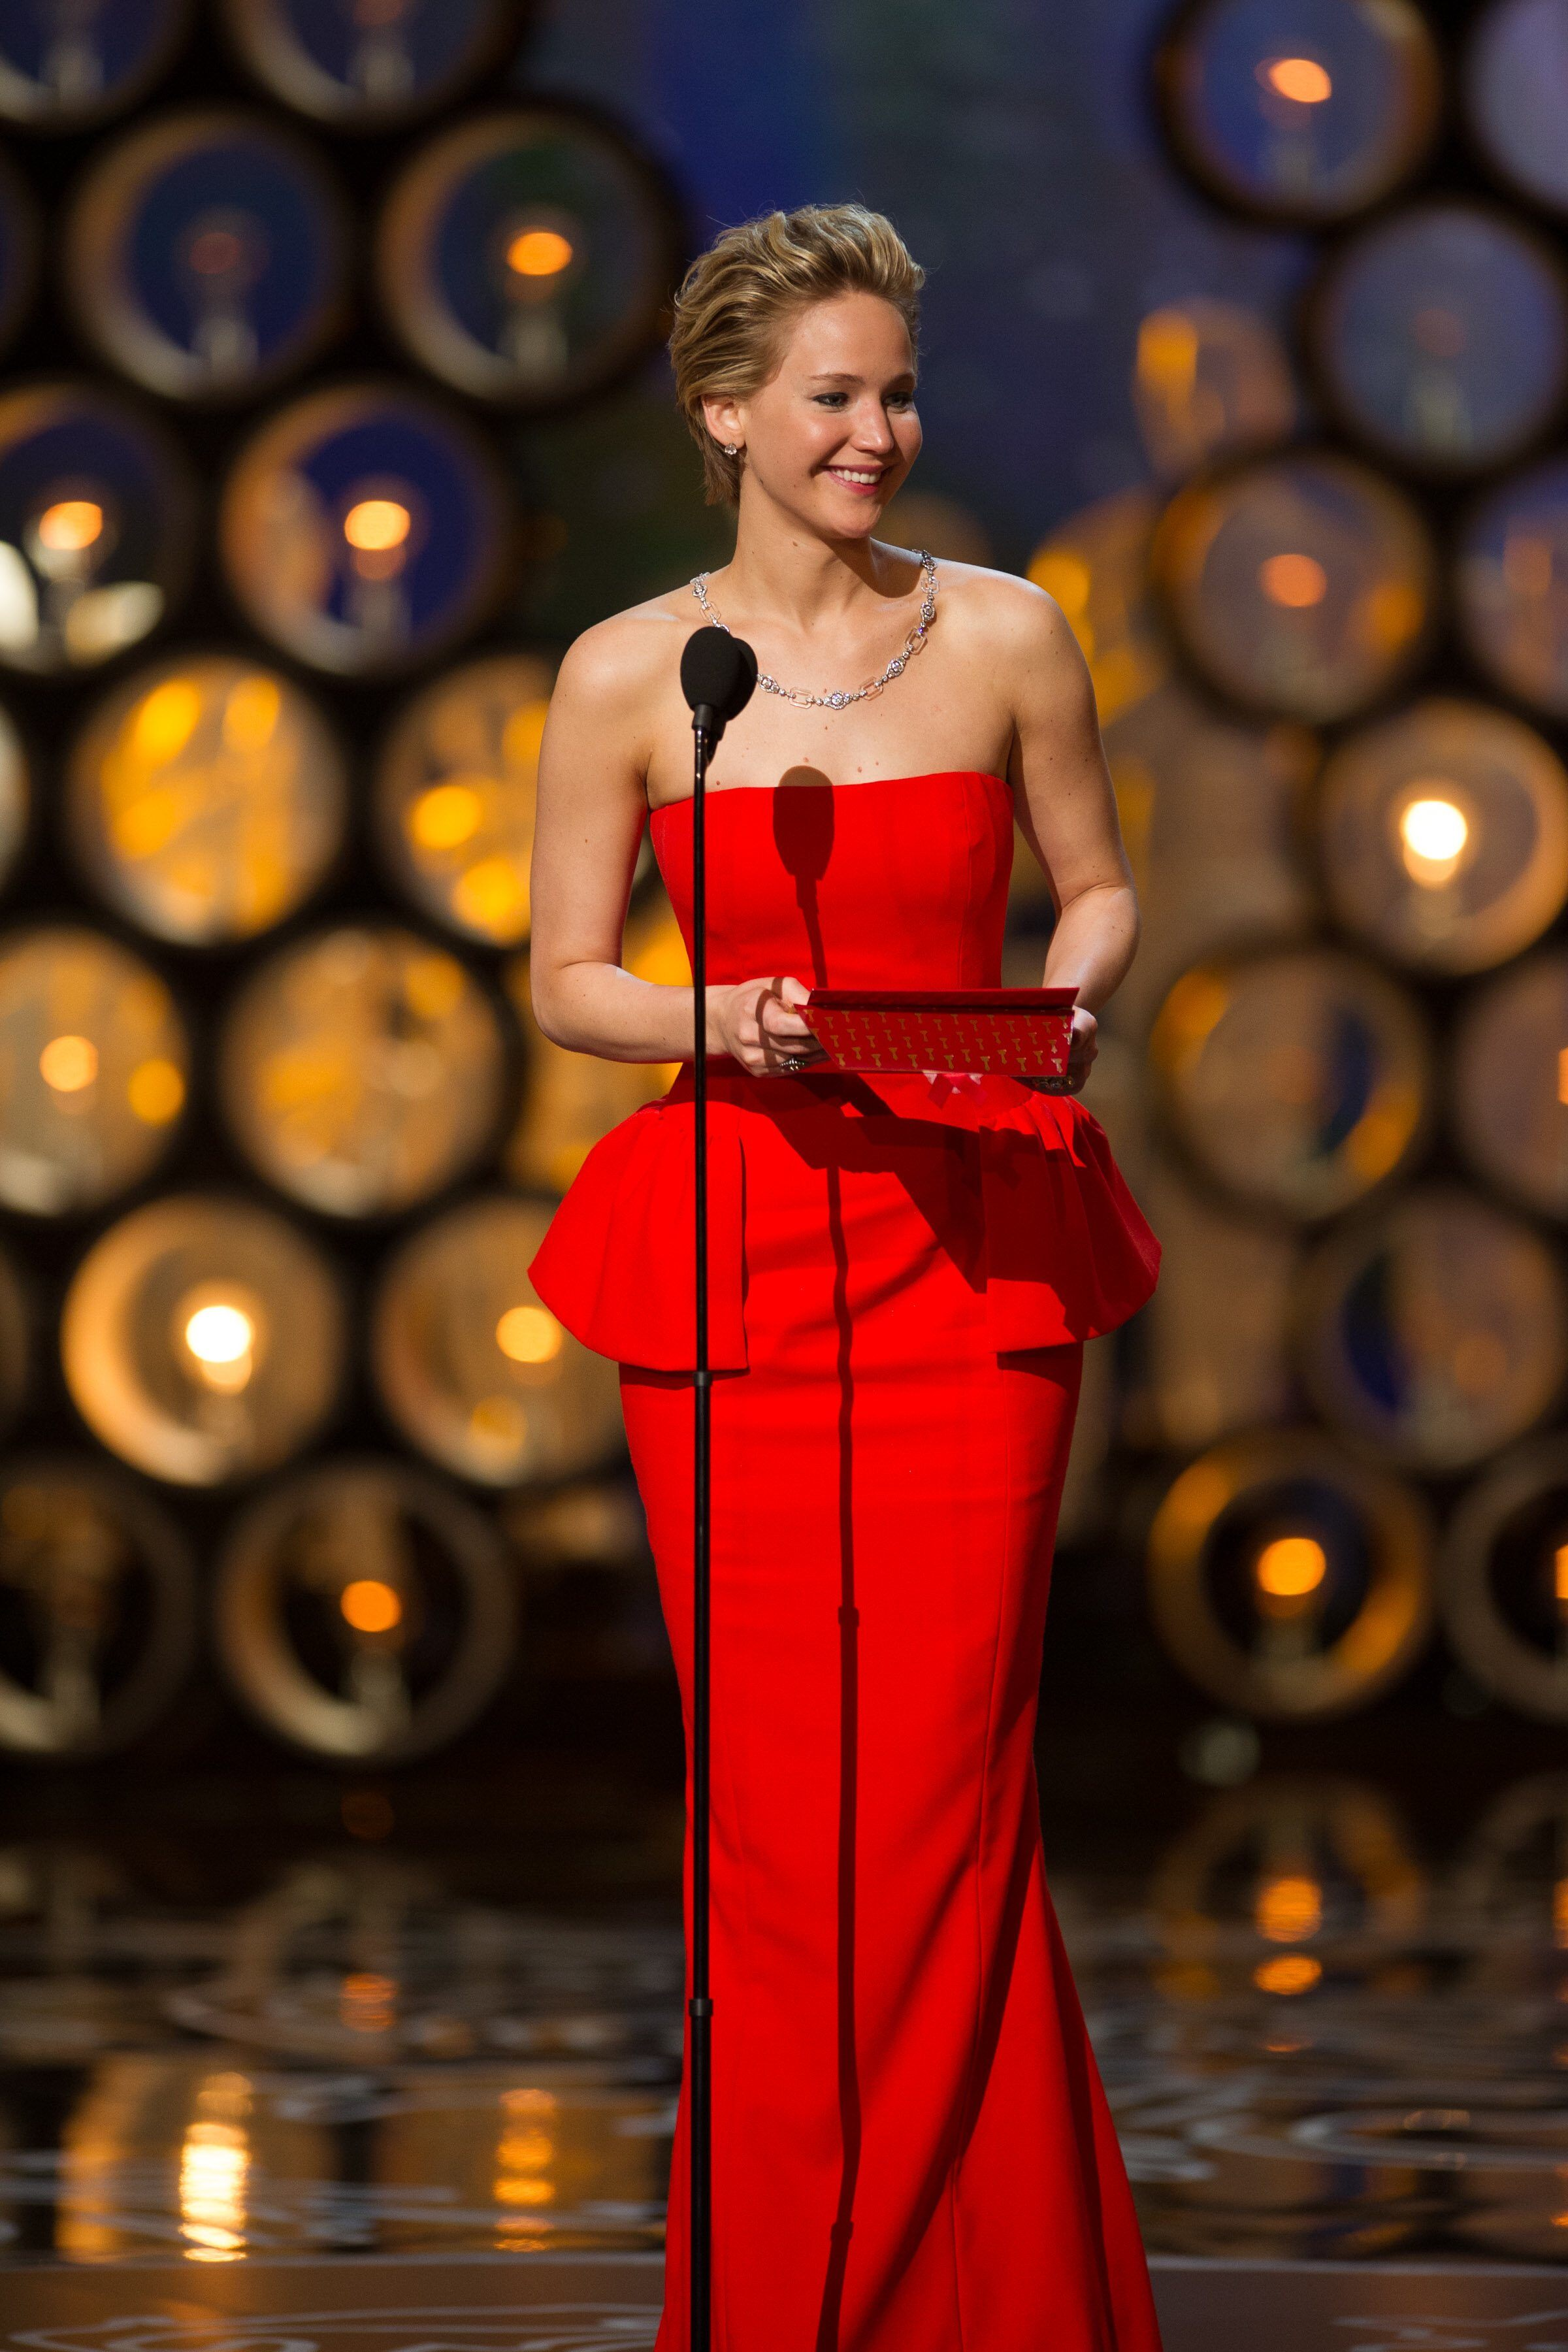 """Presenter and Oscar® Nominee for Best Actress in a supporting role for her work in """"American Hustle"""" Jennifer Lawrence."""